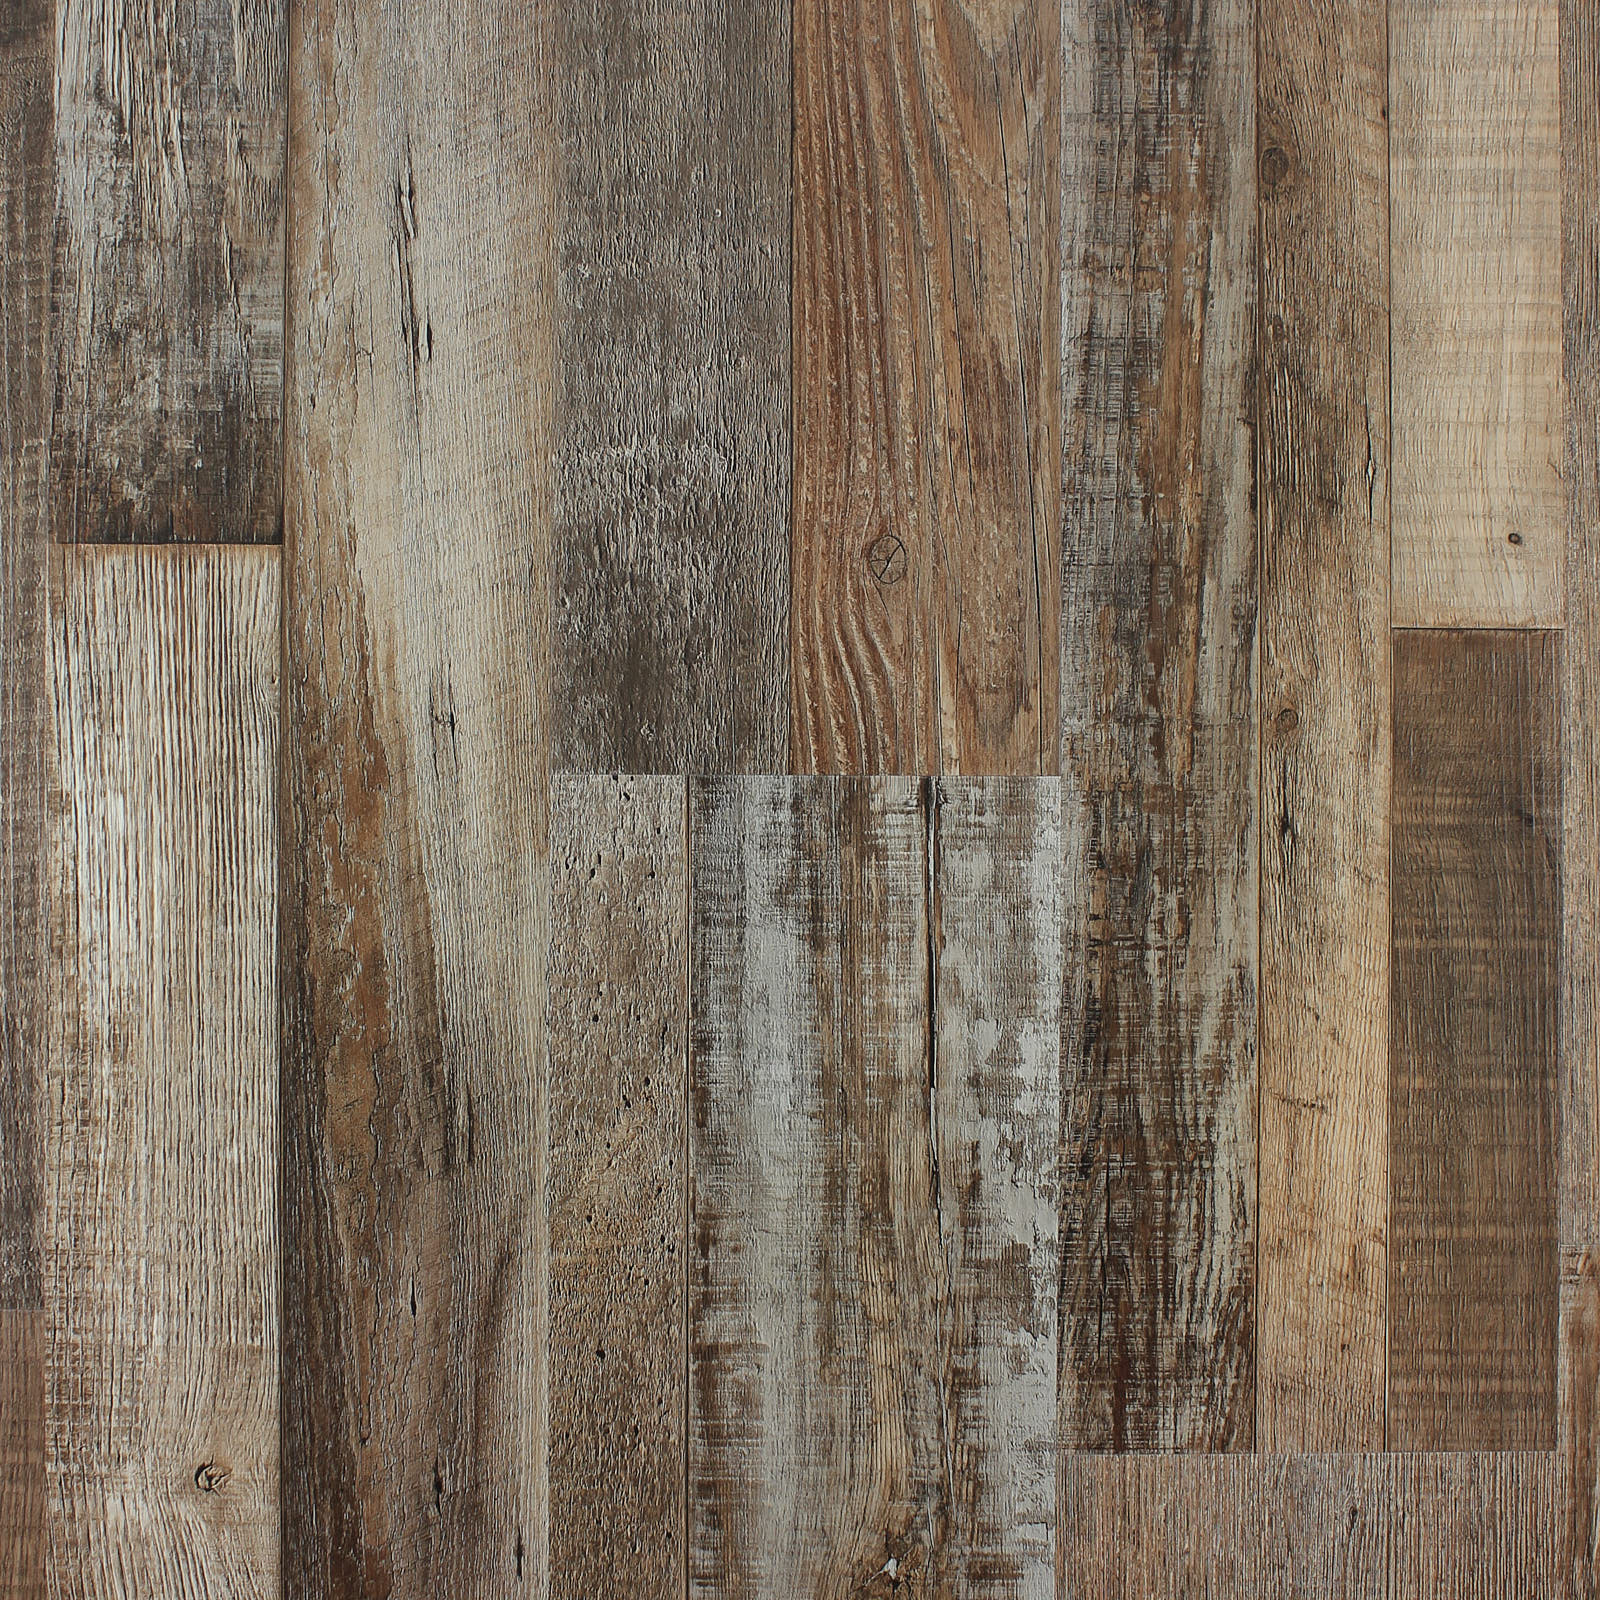 Midwest Plus Pecan Rigid Core Vinyl Plank Flooring